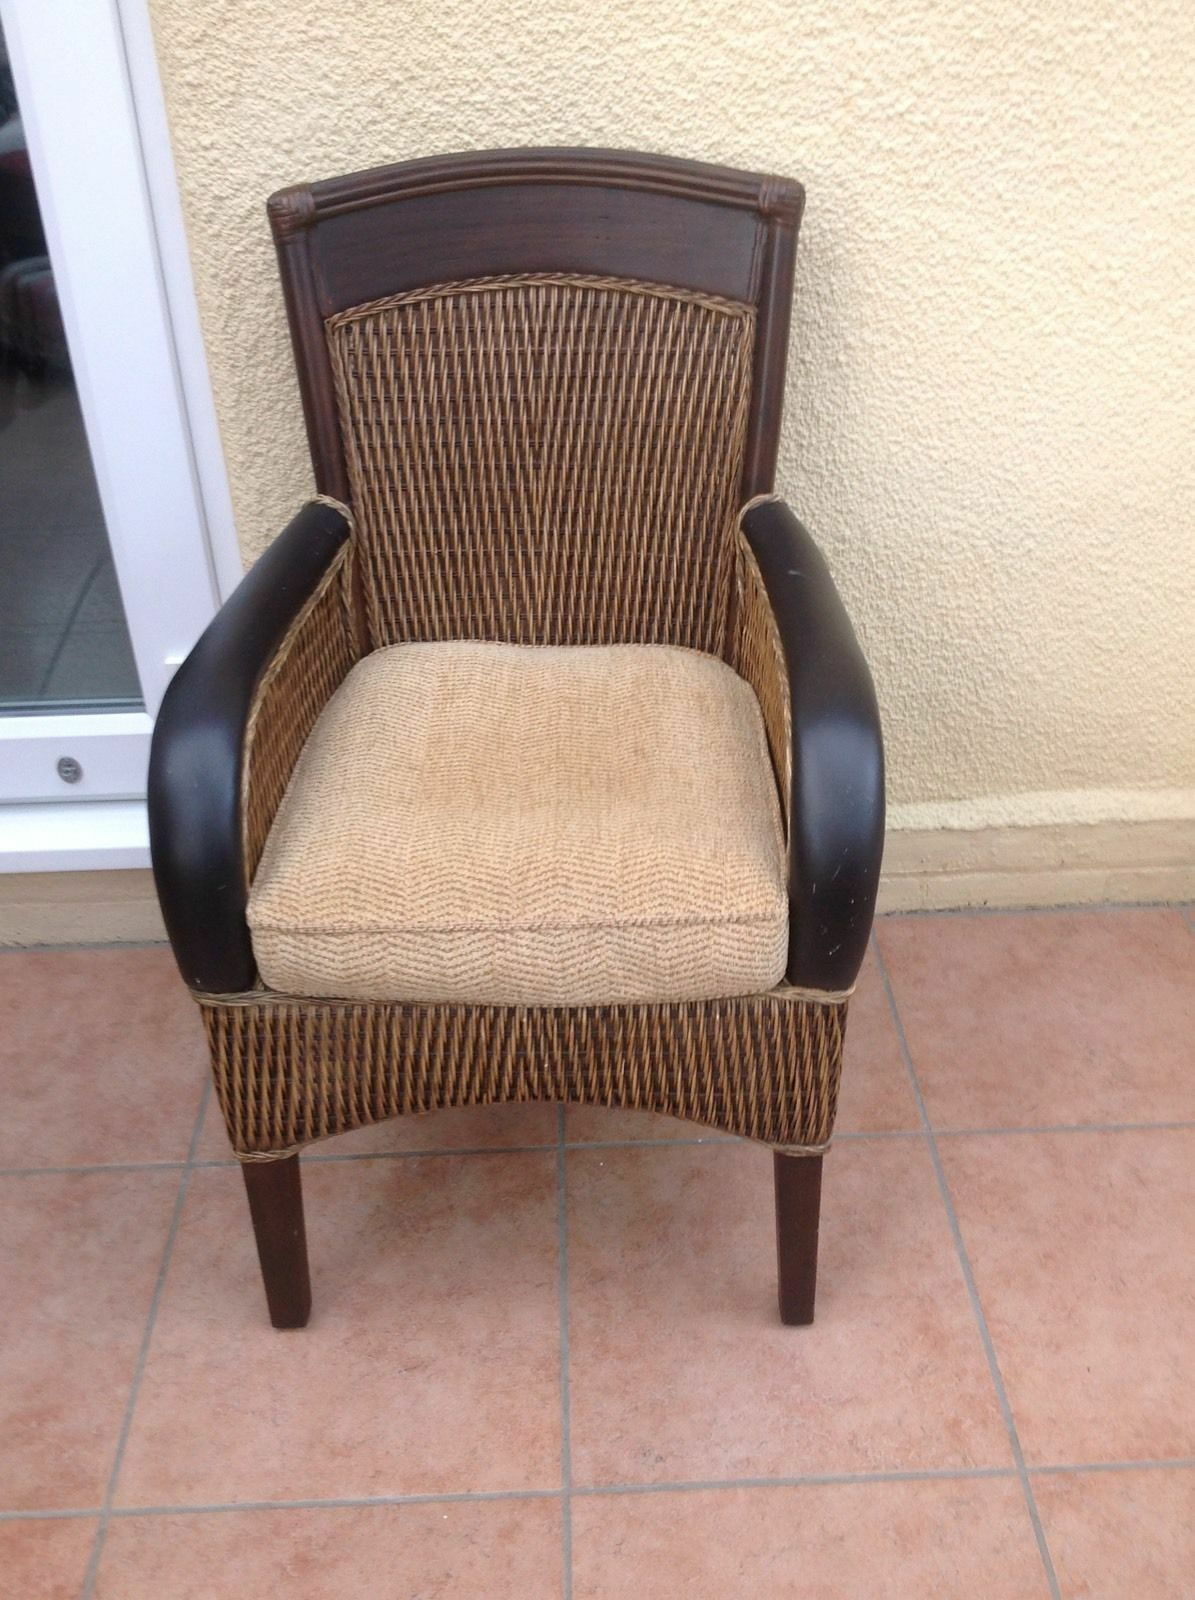 Wicker Chairs For Sale Ebay